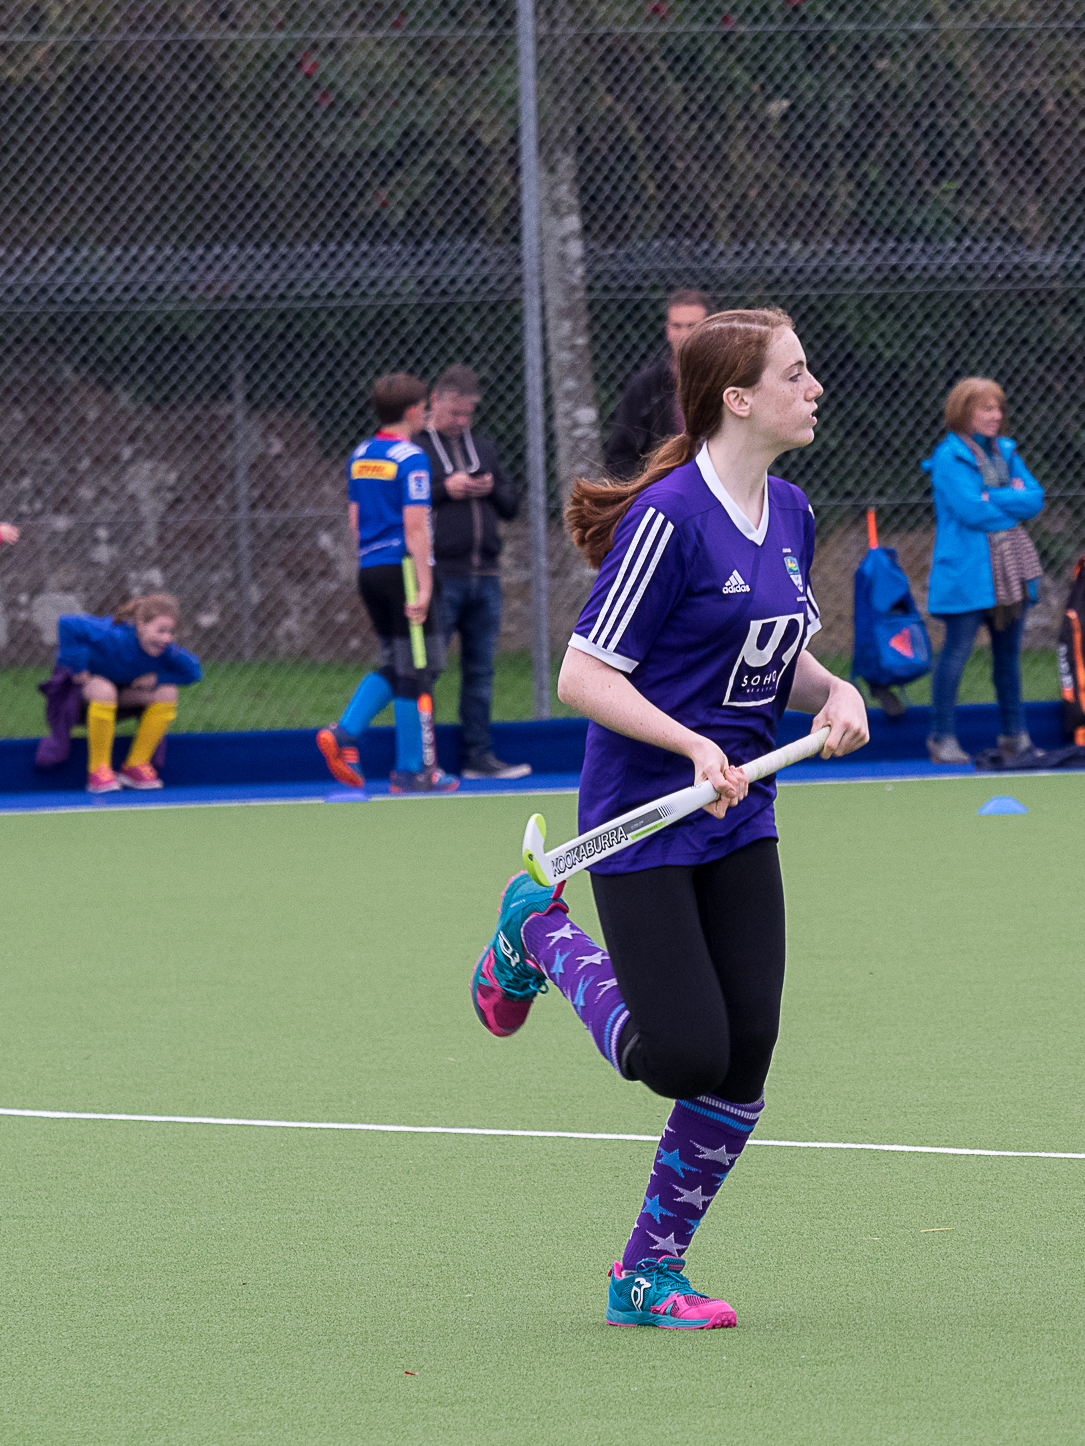 Hockey Kinross Sept 24th-39.jpg